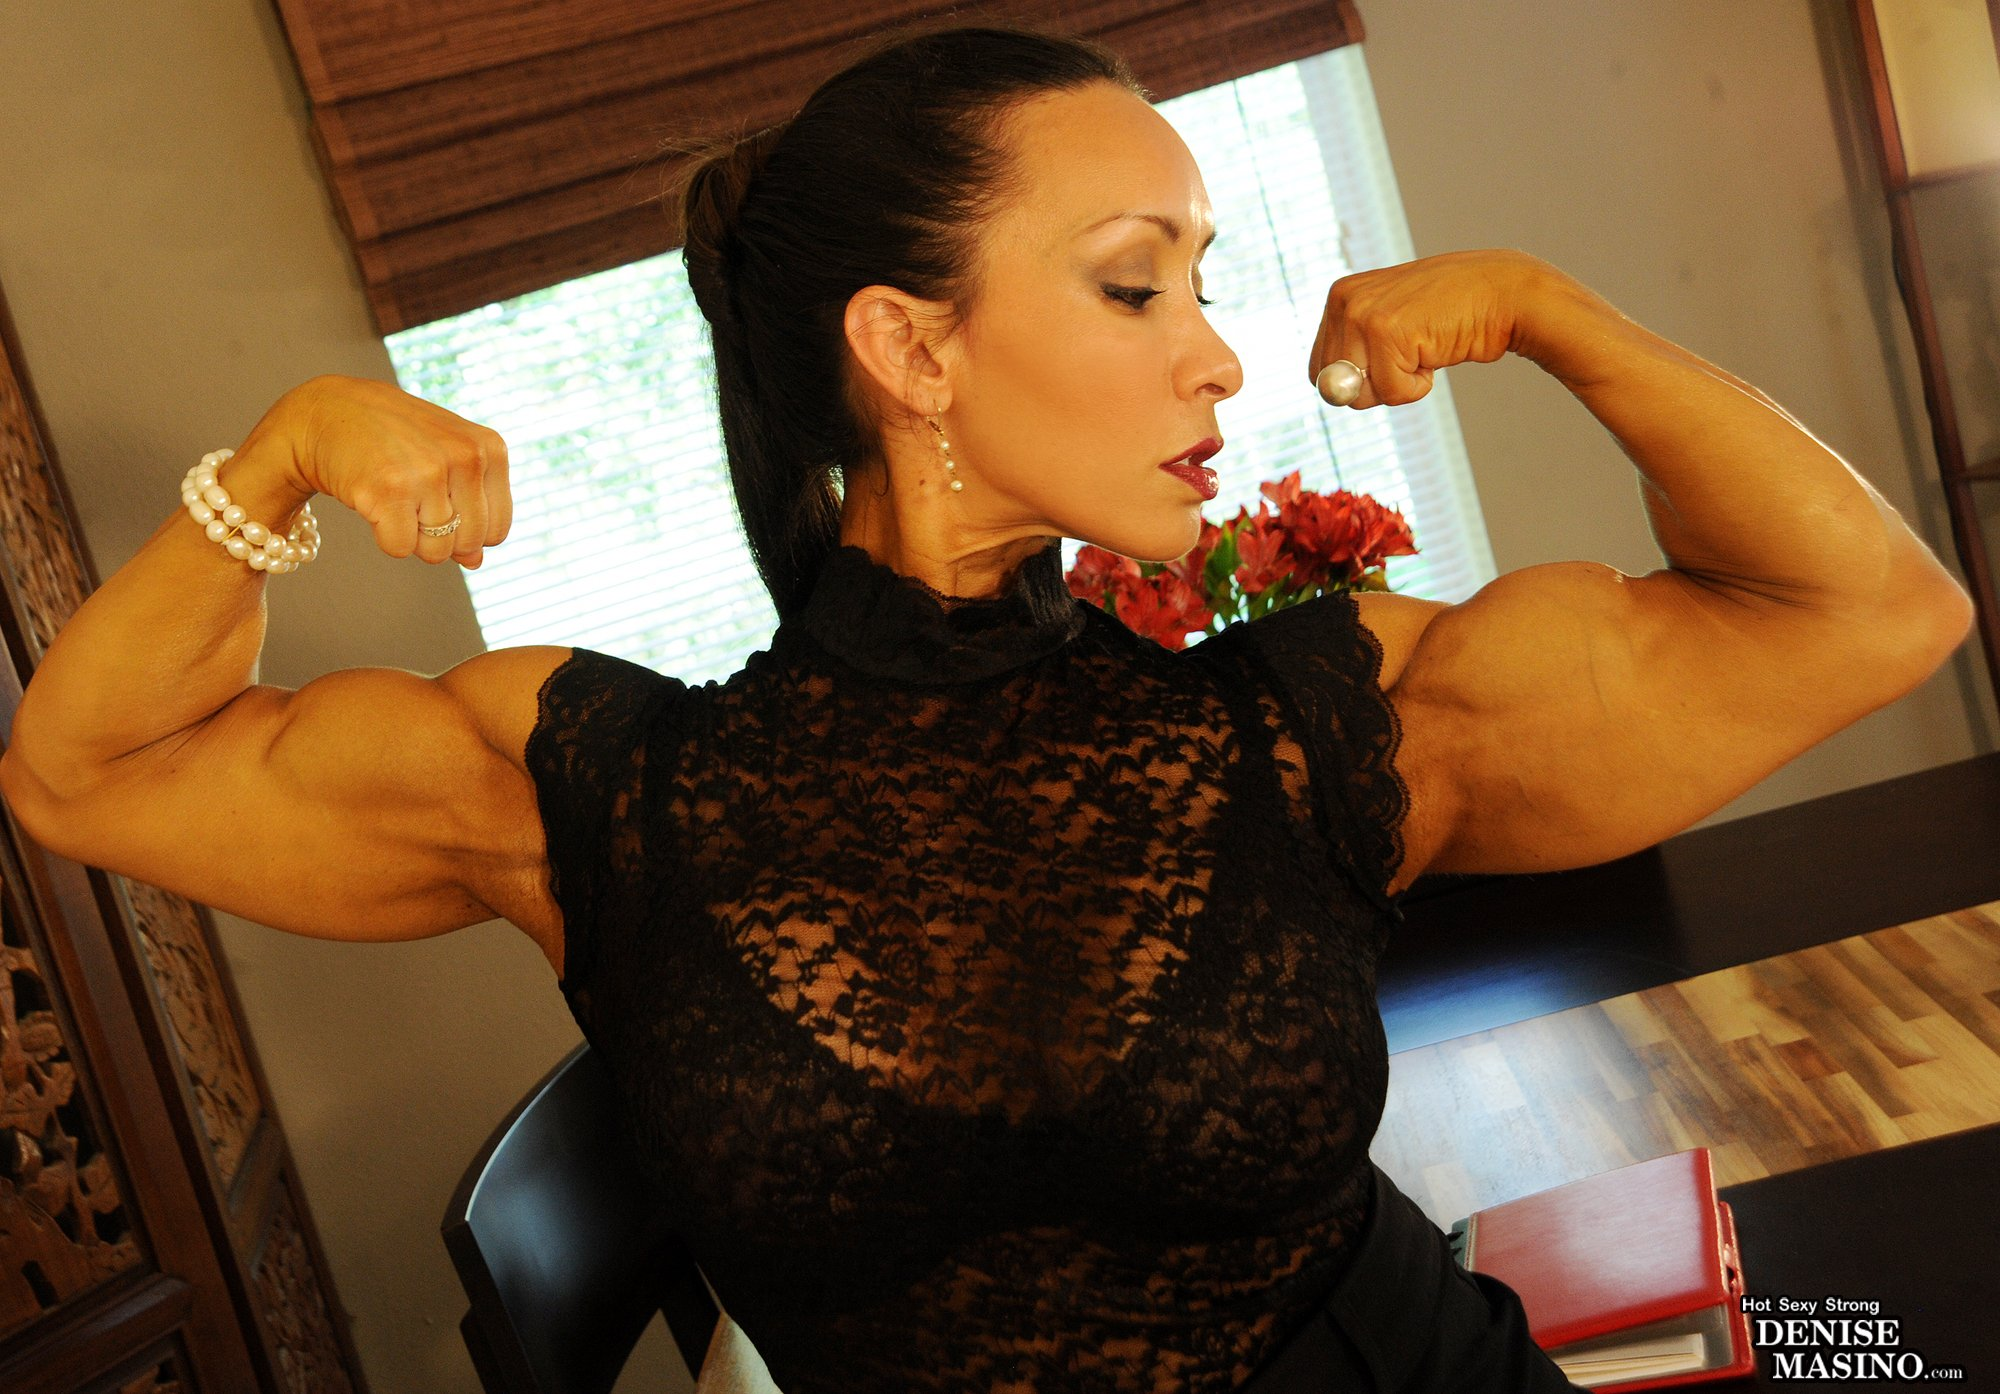 RT @Denise_Masino: I like what my arms do for this lace.  #Fashion #Lace #ChicksWhoLift #MissFit4Life https://t.co/m9cMf27mnp